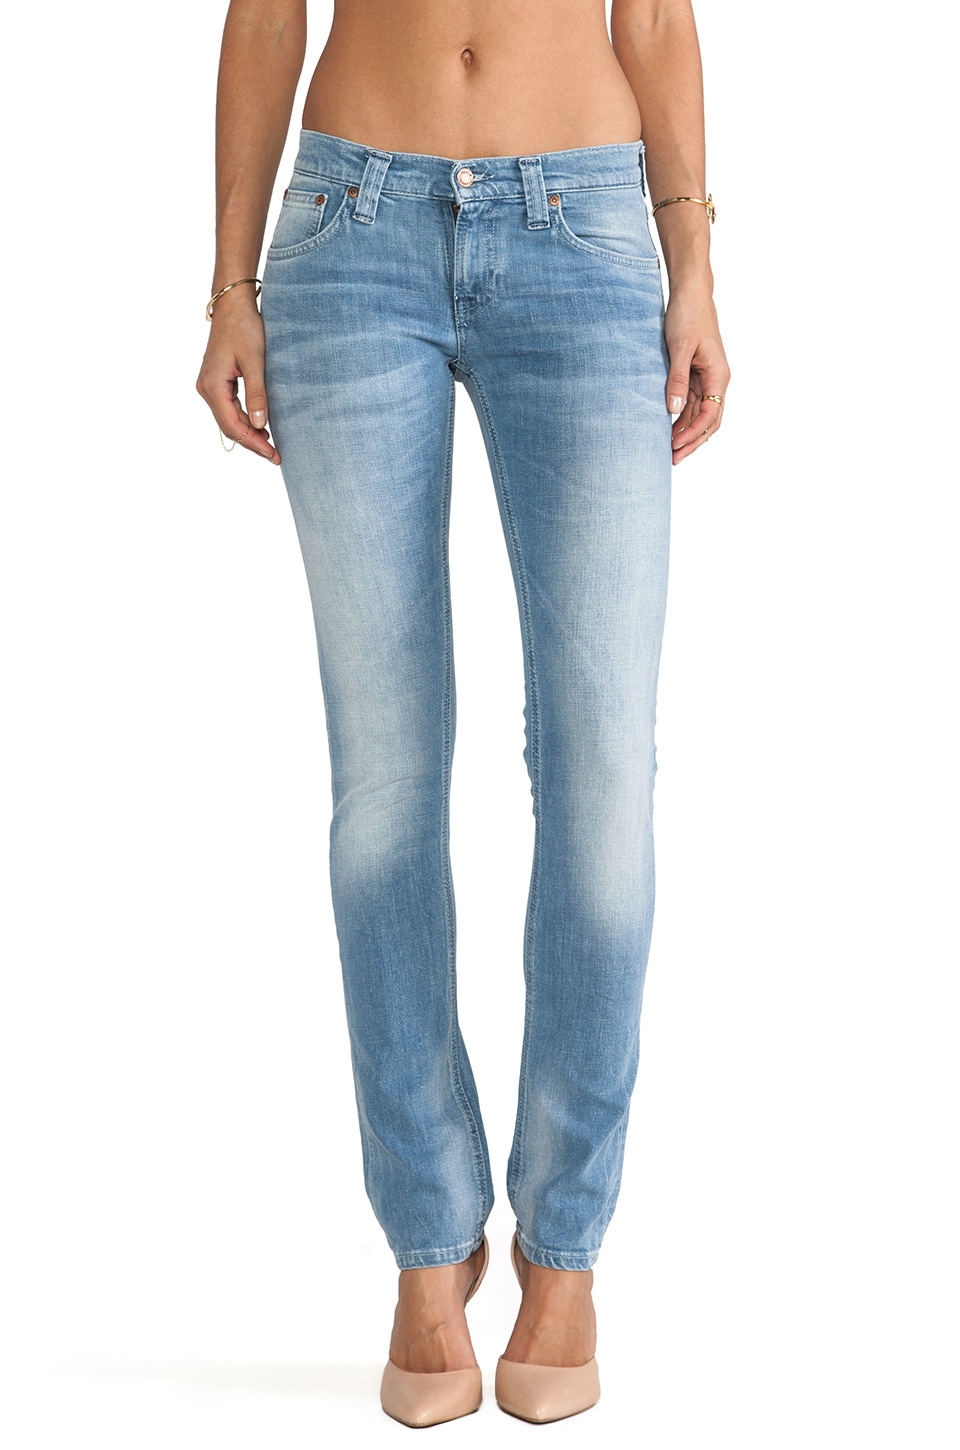 Nudie Jeans Tight Long John in Organic Crisp Indigo